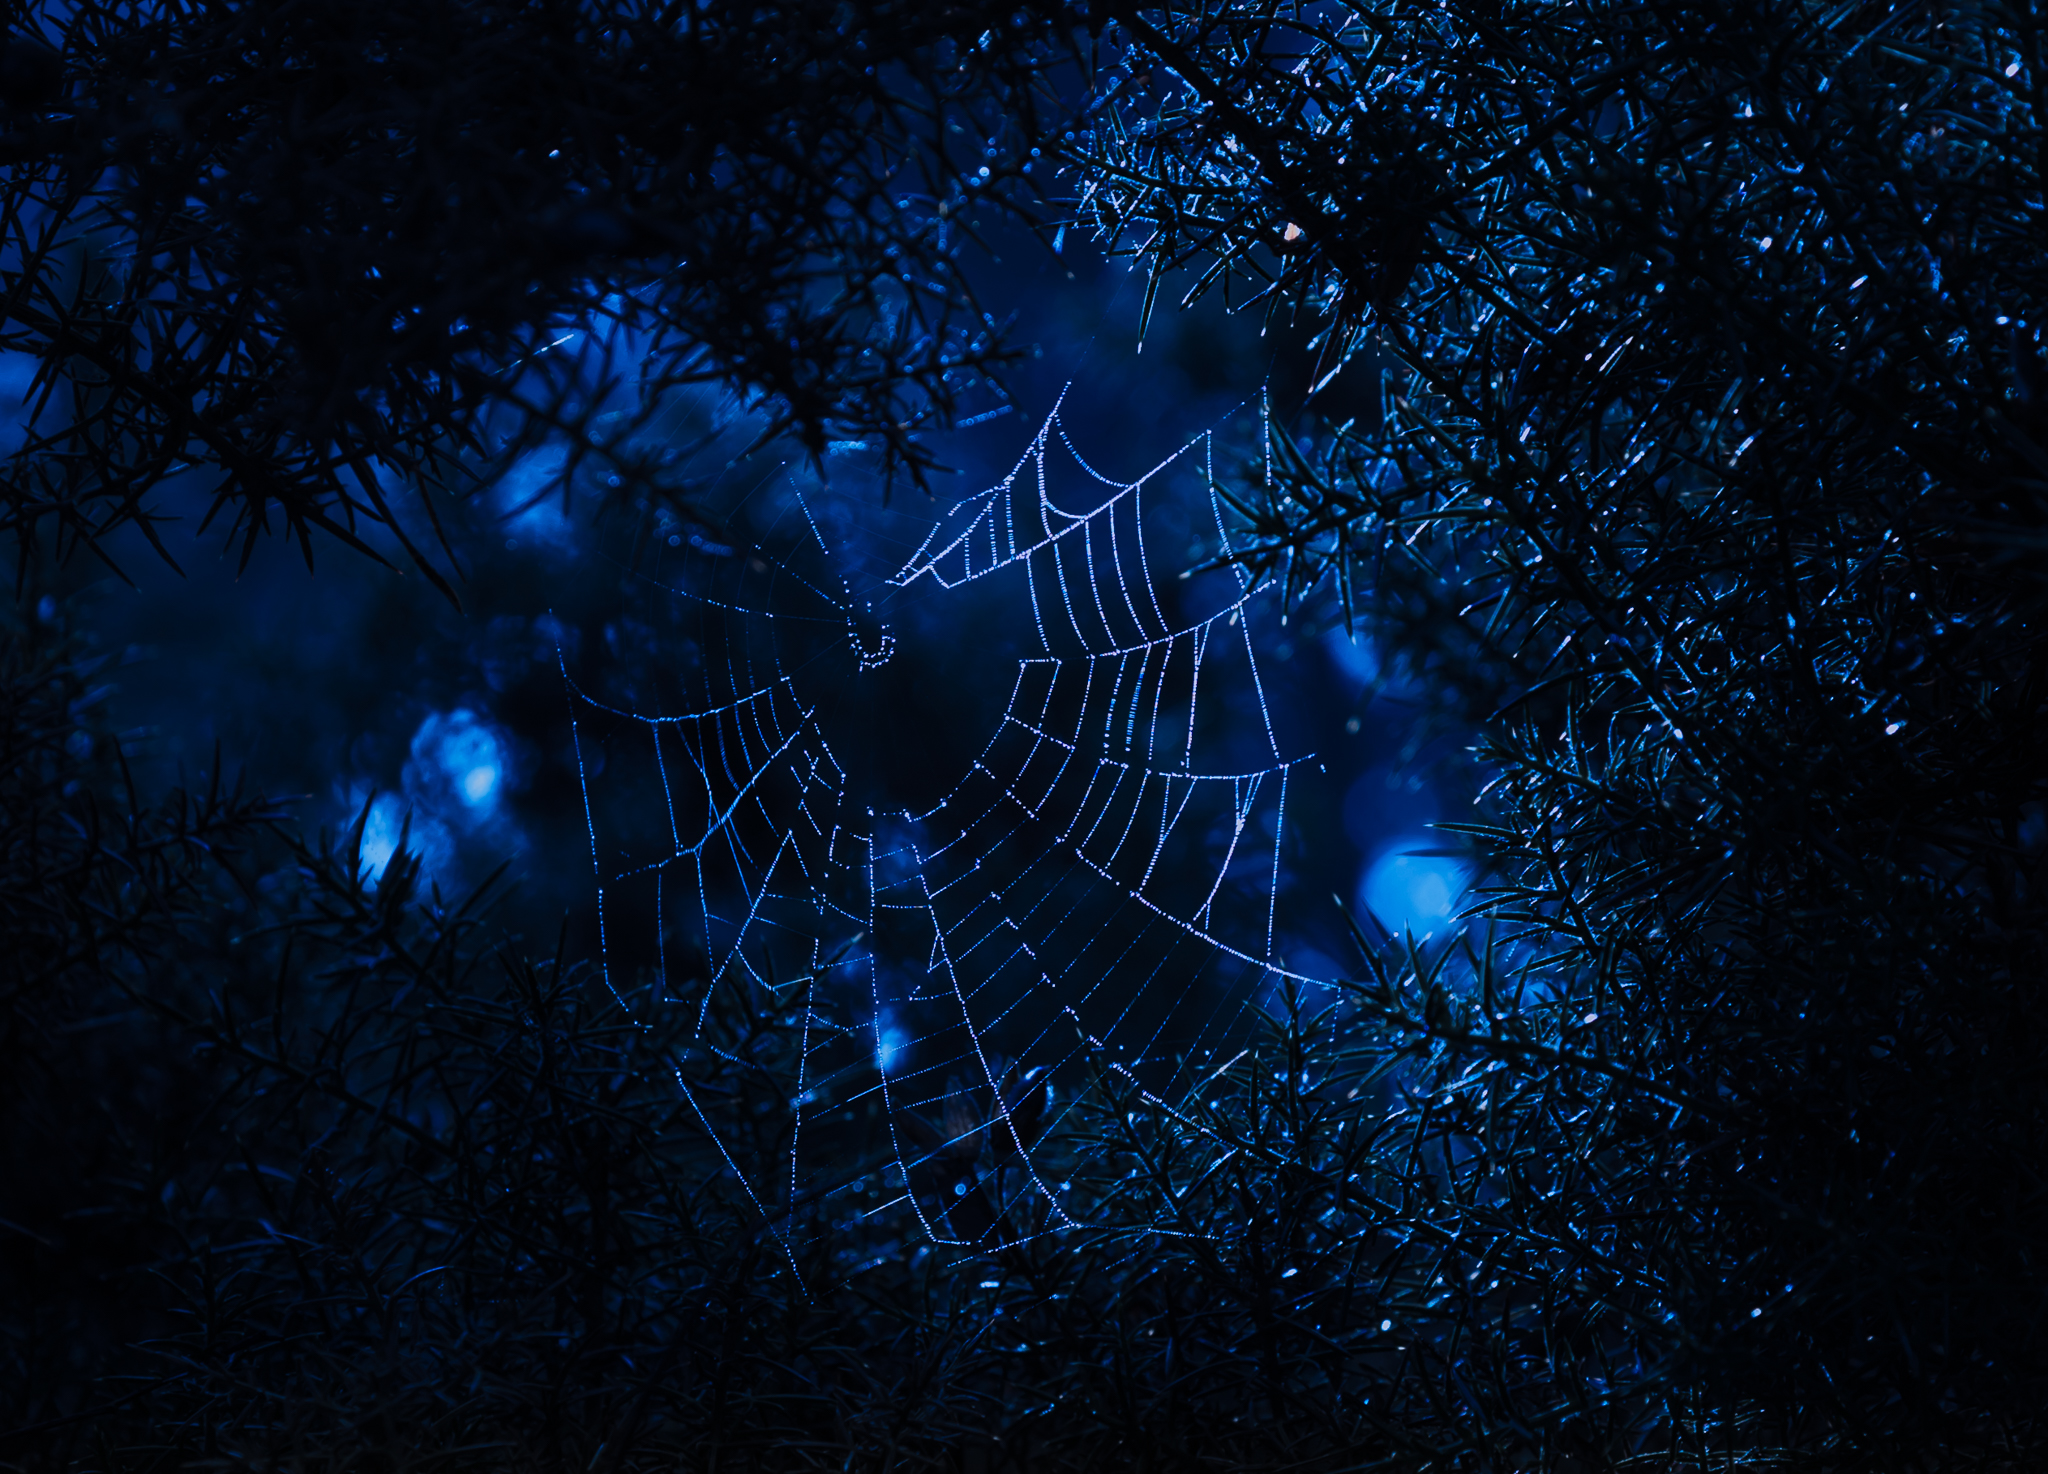 A spider had managed to create a web in a gap in a thickly branched bush. I saw the web limned with light from the moon and thought it provided a great picture.